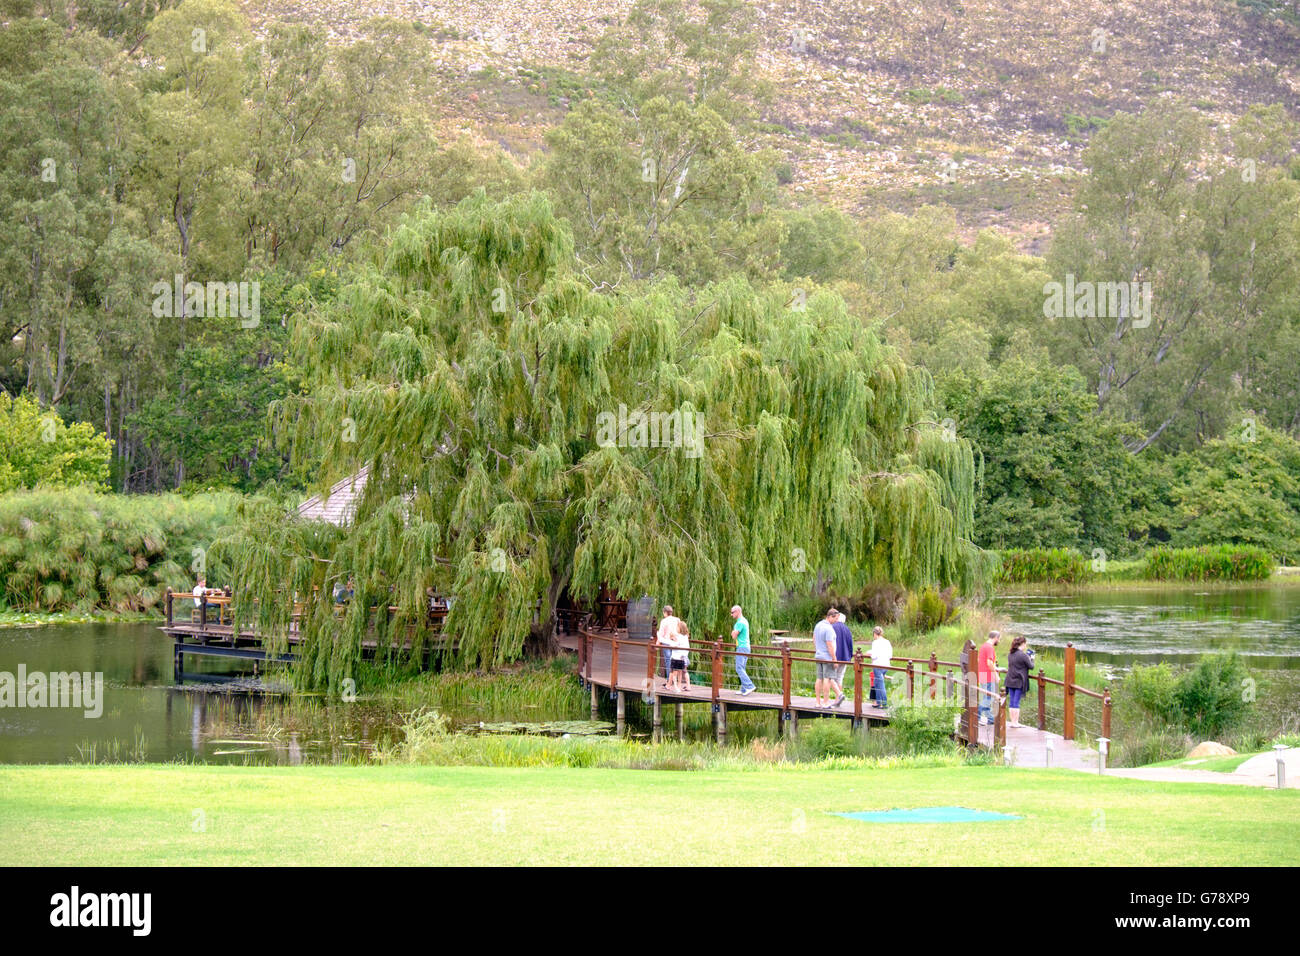 Stark-Conde winery in Jonkershoek Valley, Stellenbosch, South Africa - Stock Image